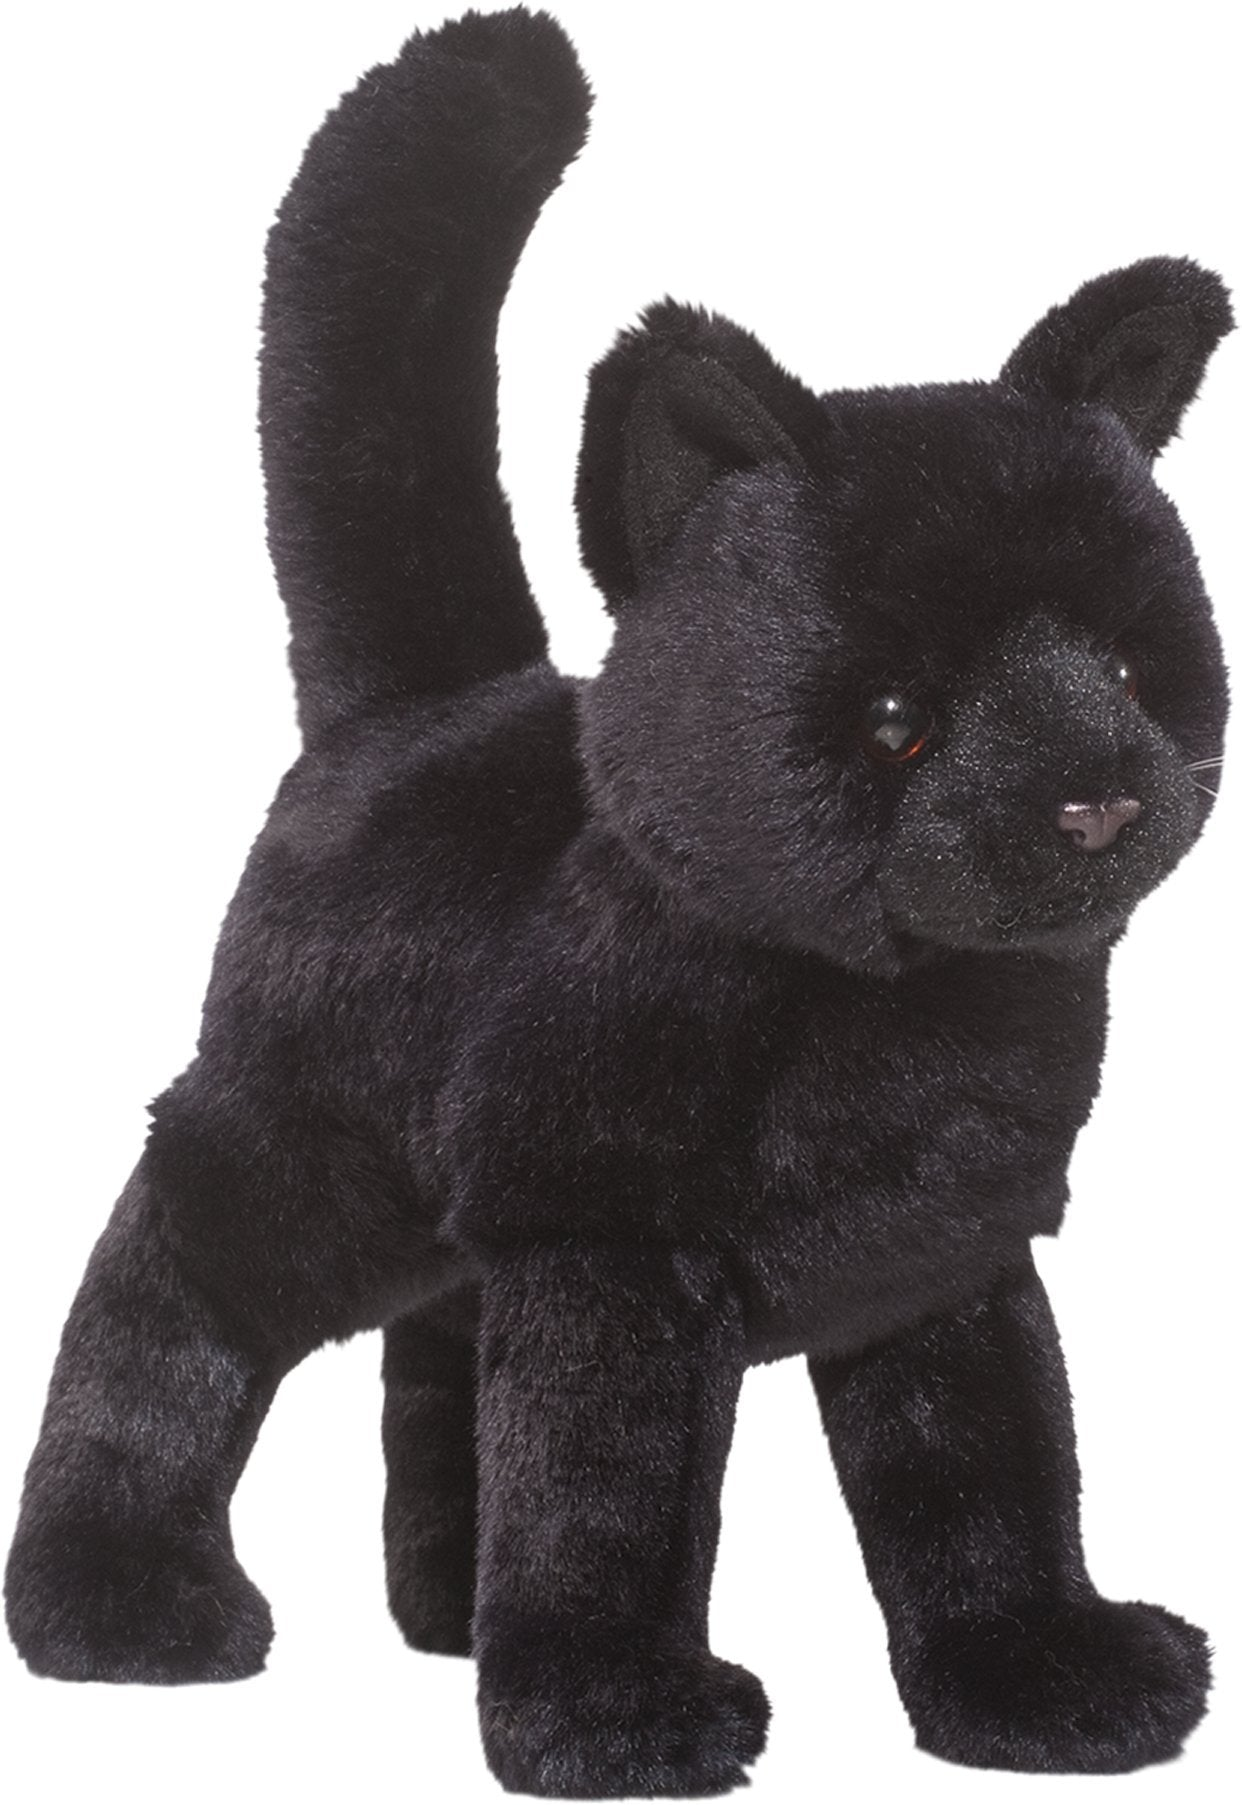 de259f7d555 Dolls - Cuddle Toys 1867 30 cm Long Midnight Black Cat Plush Toy for ...